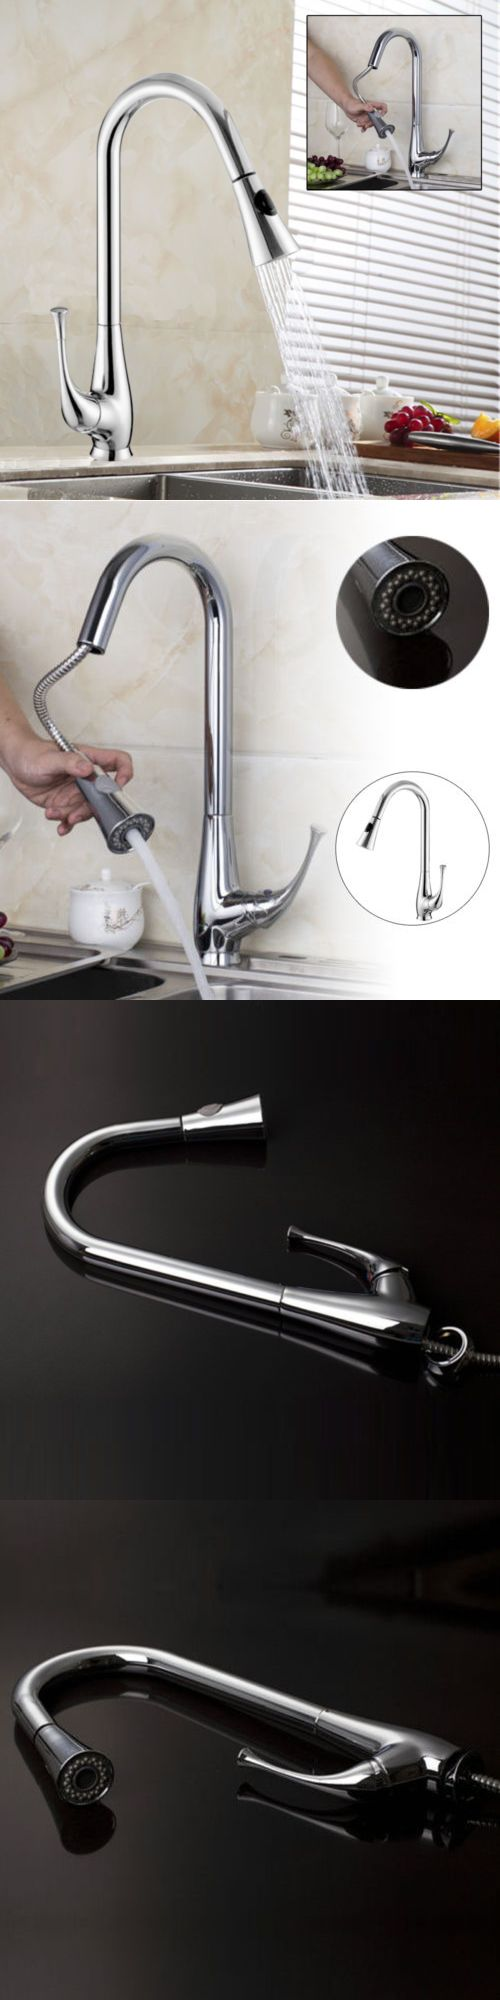 Bathroom sink faucet one hole double handle basin mixer tap ebay - Faucets 42024 Chrome Pull Out With Spray Bathroom Basinand Kitchen Sink Mixer Tap Single Lever